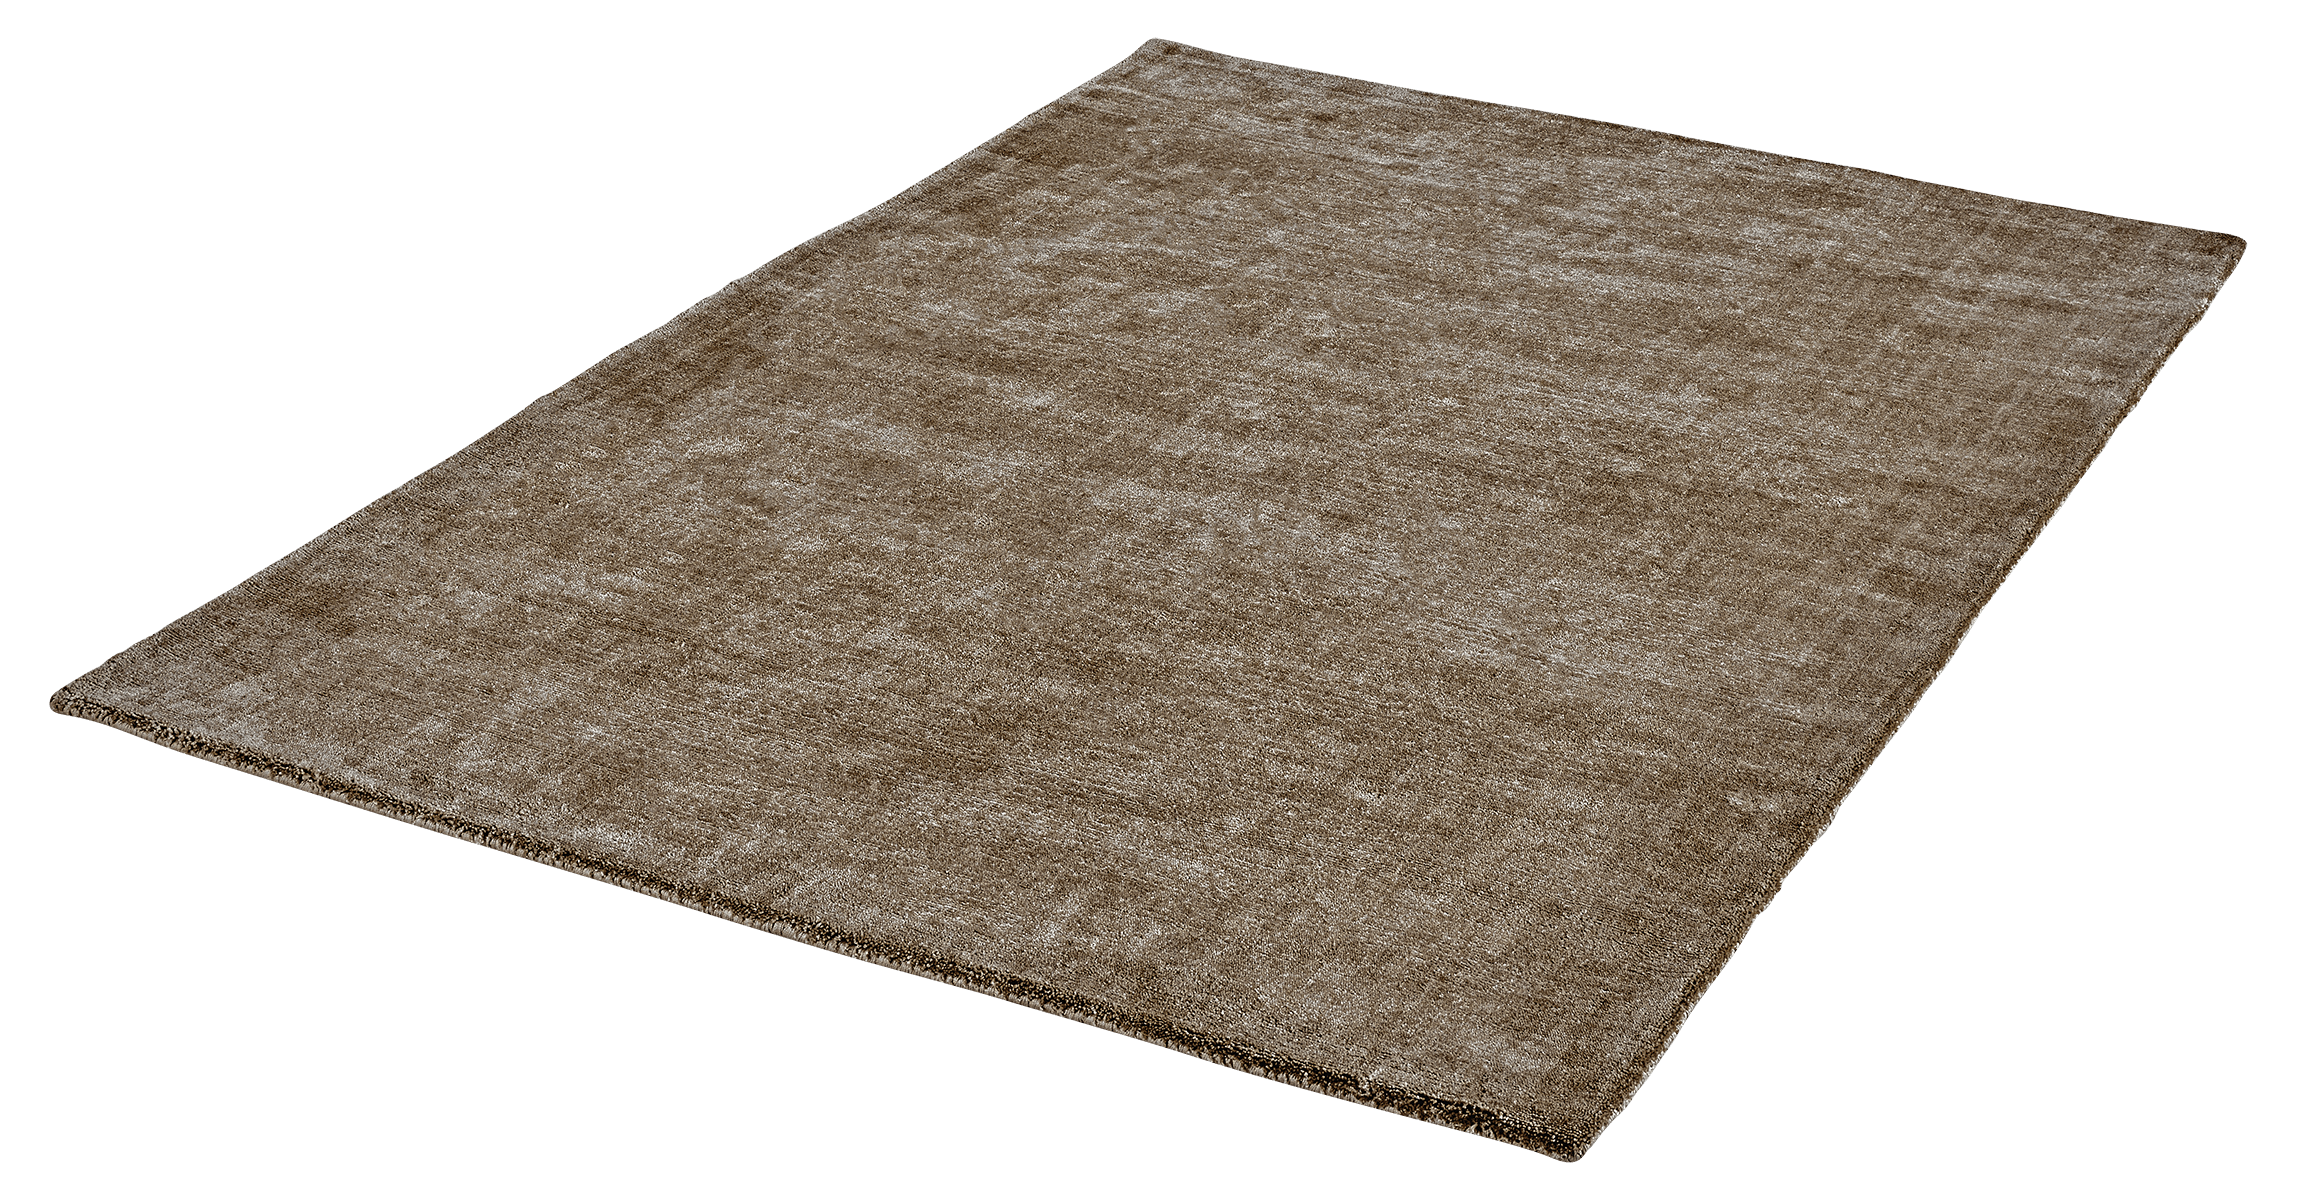 Vloerkleed Lyocell Handgeweven Obsession Breeze of Obsession Taupe 150 - Omid Carpets